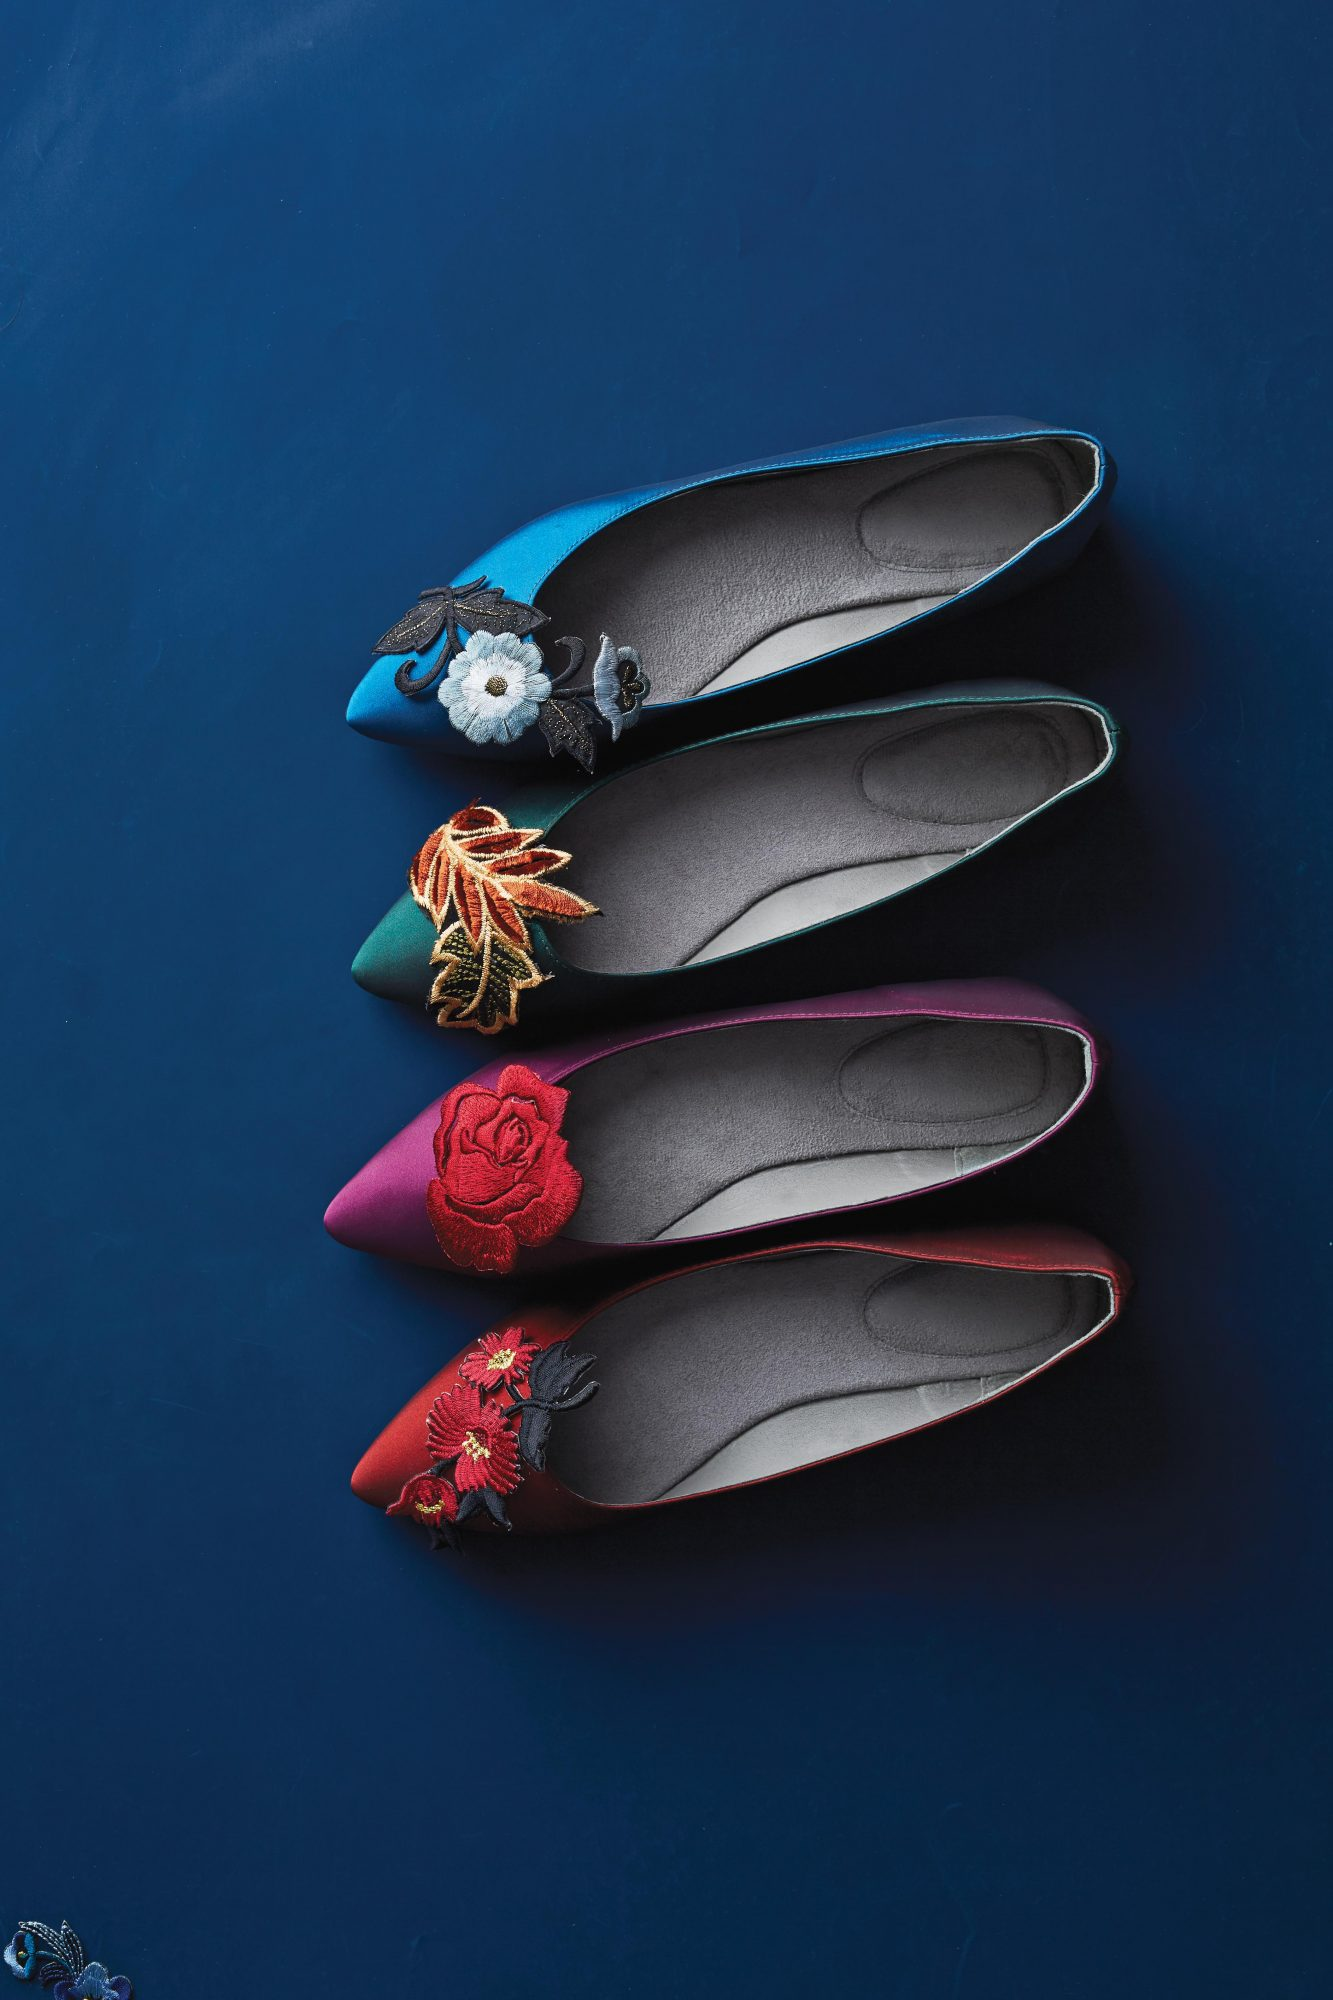 Give your girls the gift of comfortable dancing feet with these chic appliqué ballet flats. Of course, they're cute enough to wear way past the reception.